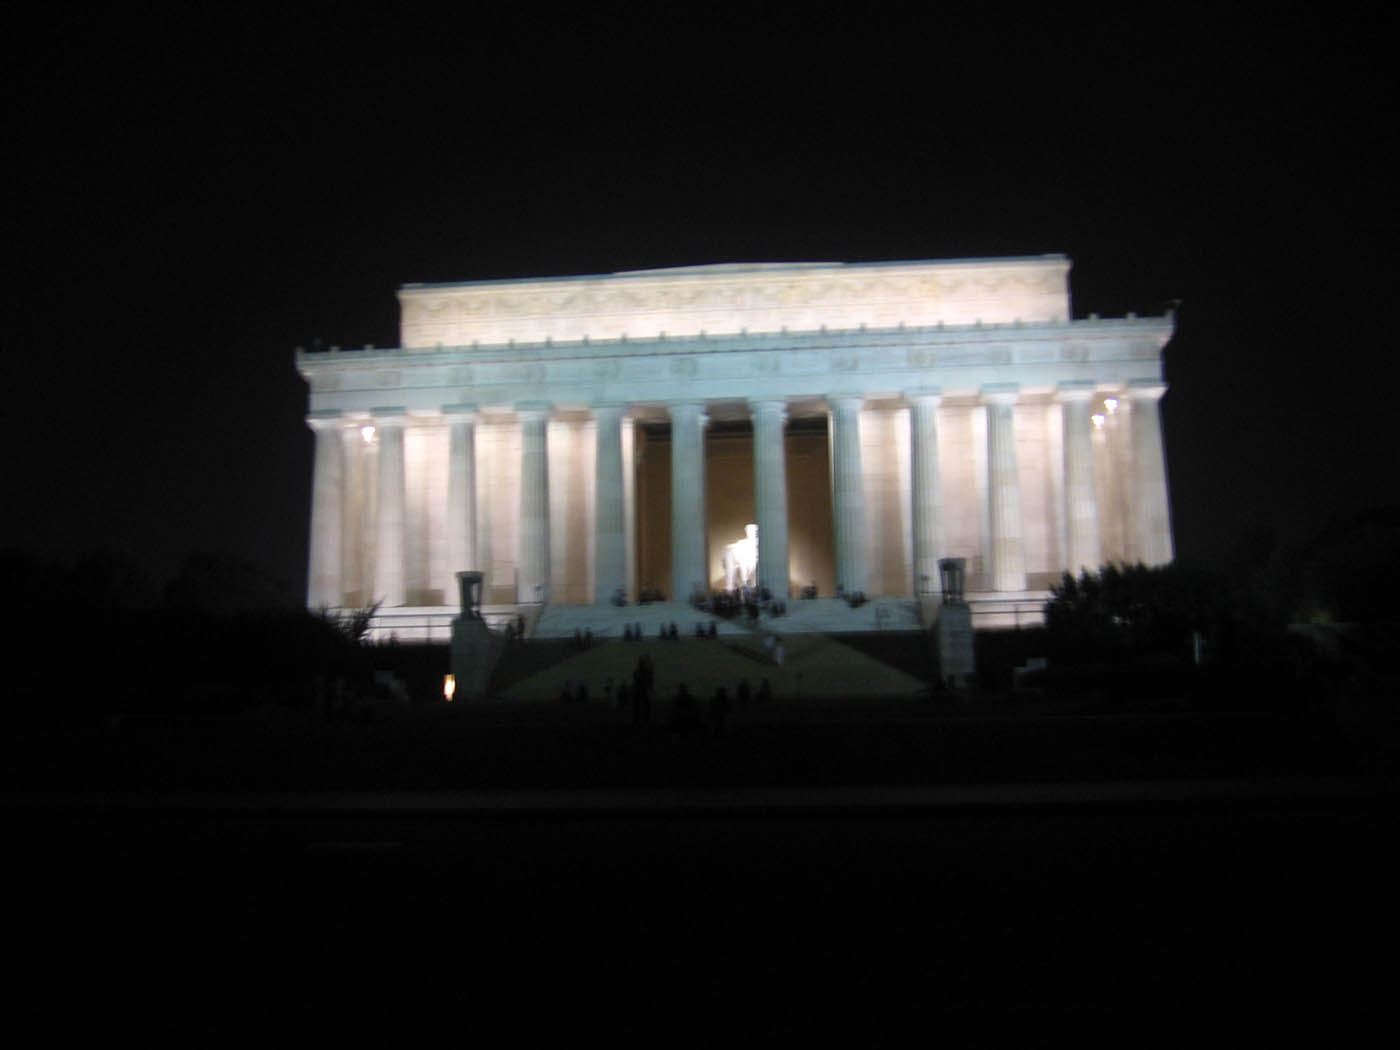 lincoln memorial in washington d.c. - silly america